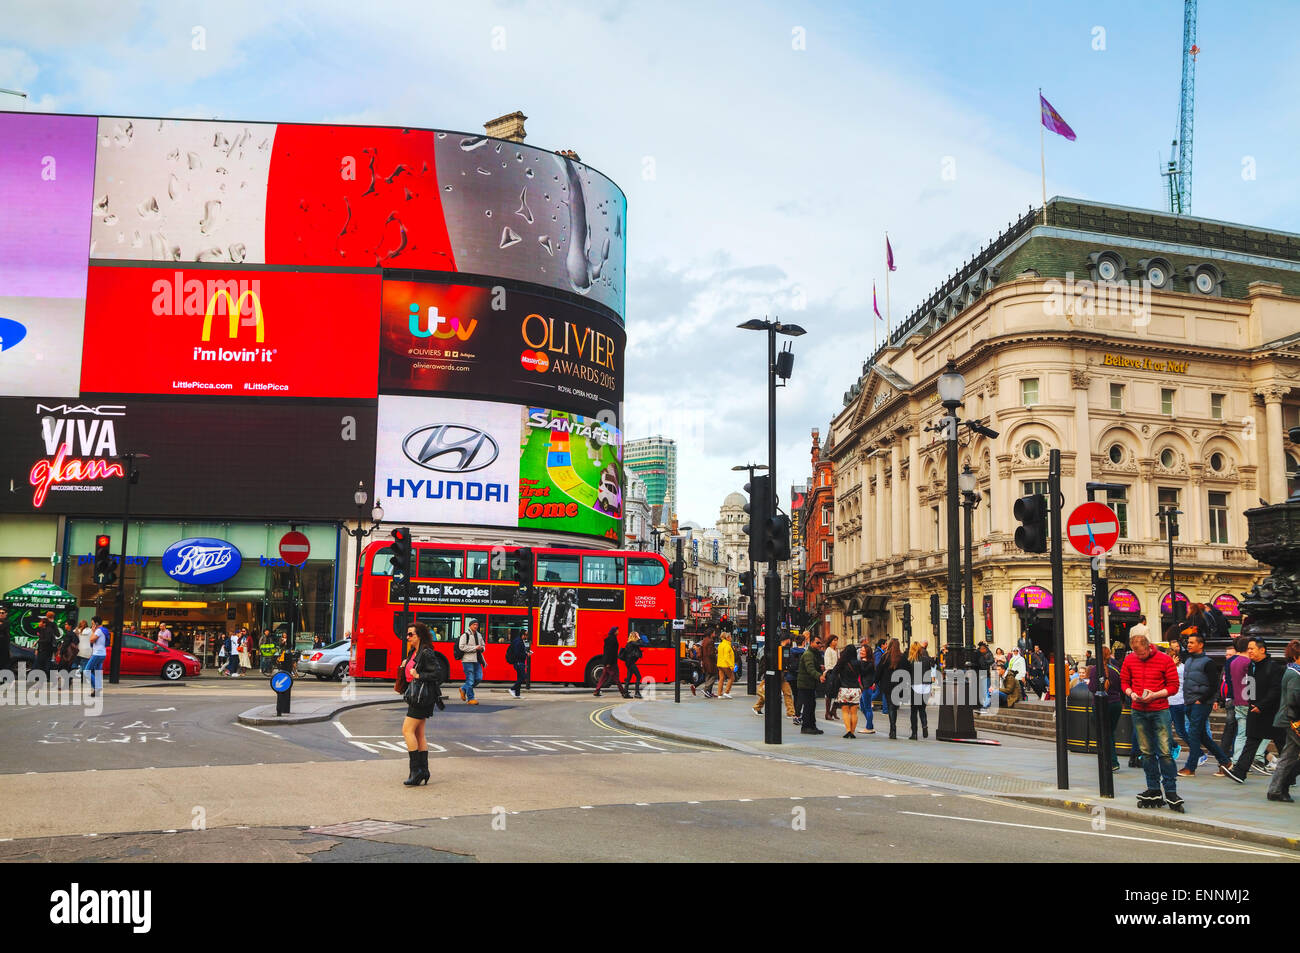 LONDON - APRIL 12: Piccadilly Circus junction crowded by people on April 12, 2015 in London, UK. - Stock Image